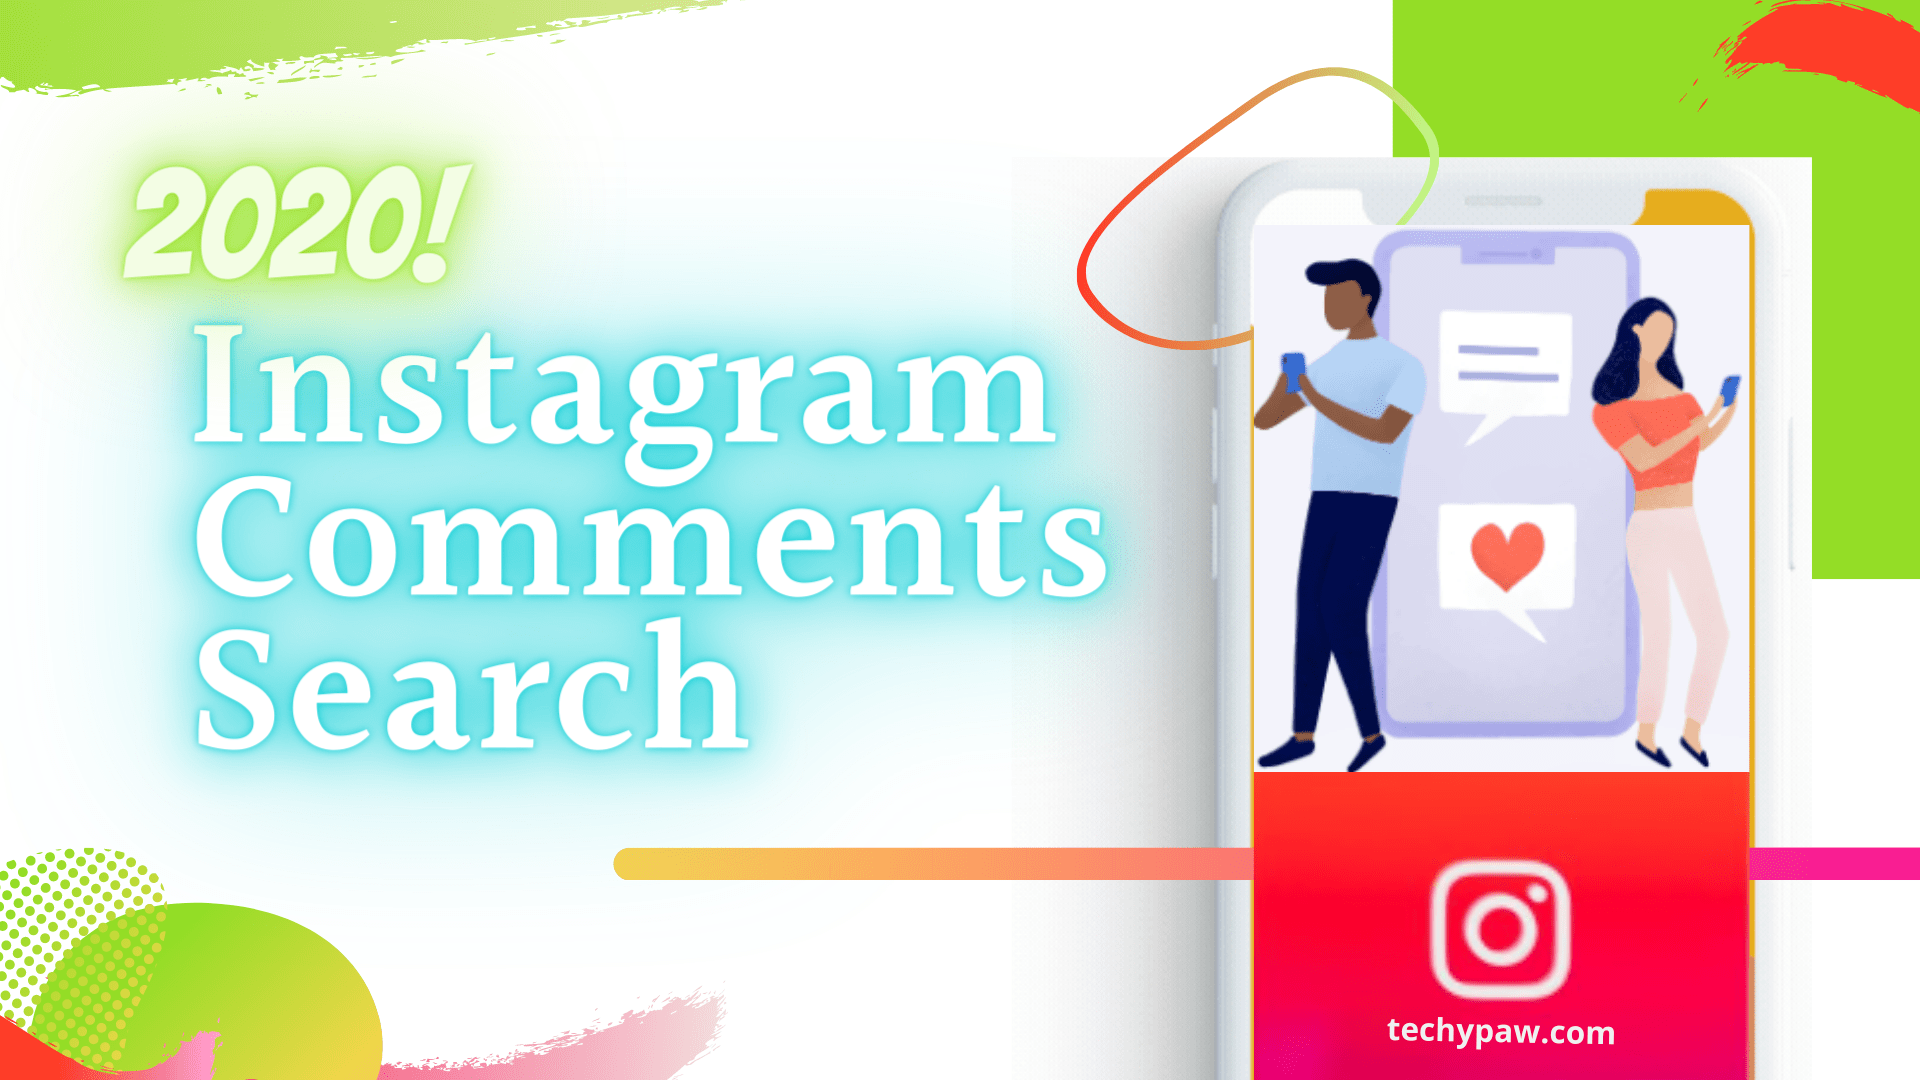 Reasons Why Instagram Comments Search Is Getting More Popular In 2020